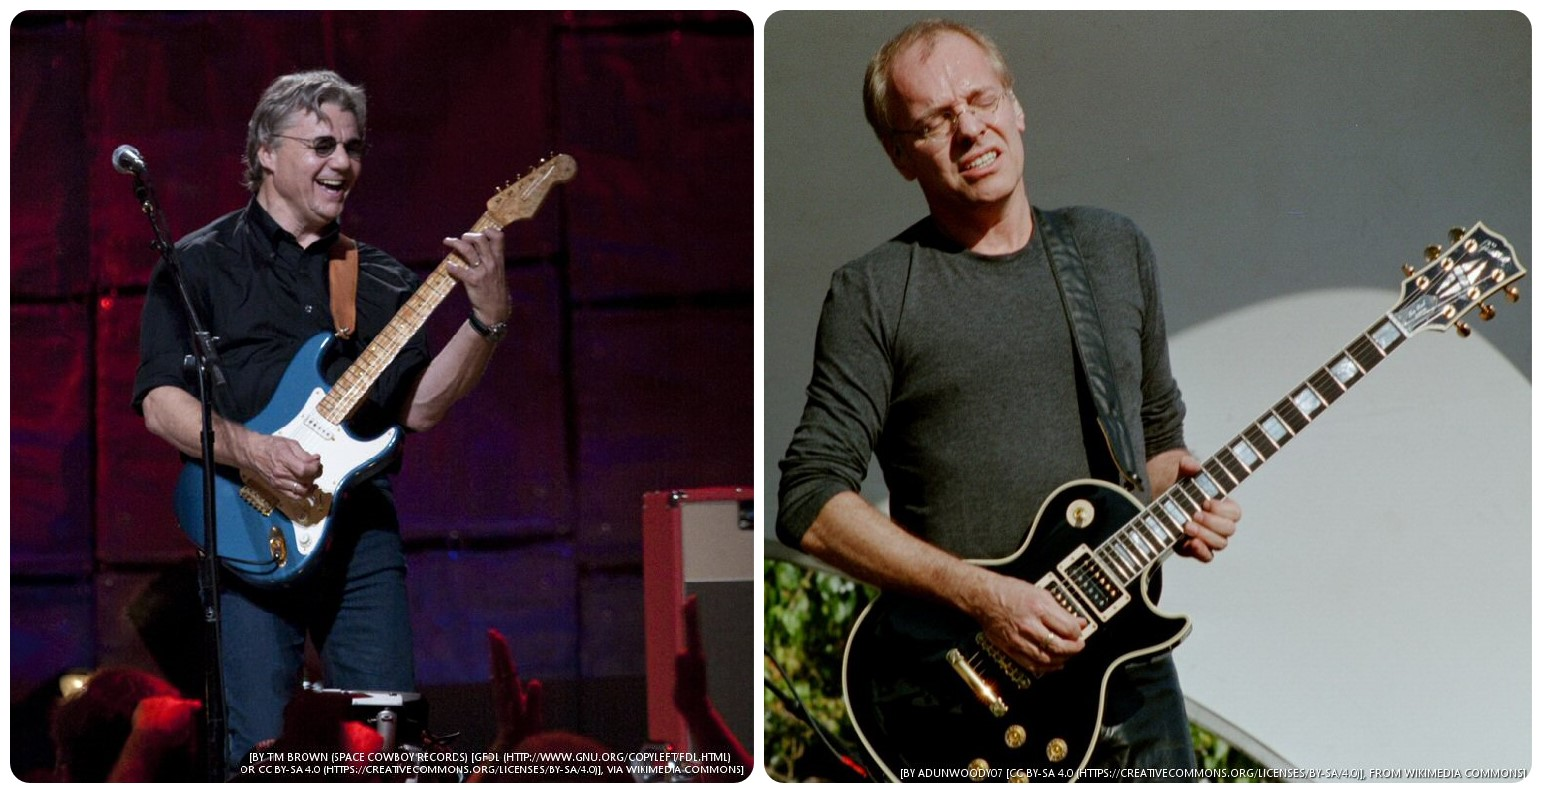 If You Were At That Steve Miller/Peter Frampton Show, You Might Be On Their New Live Album, Too